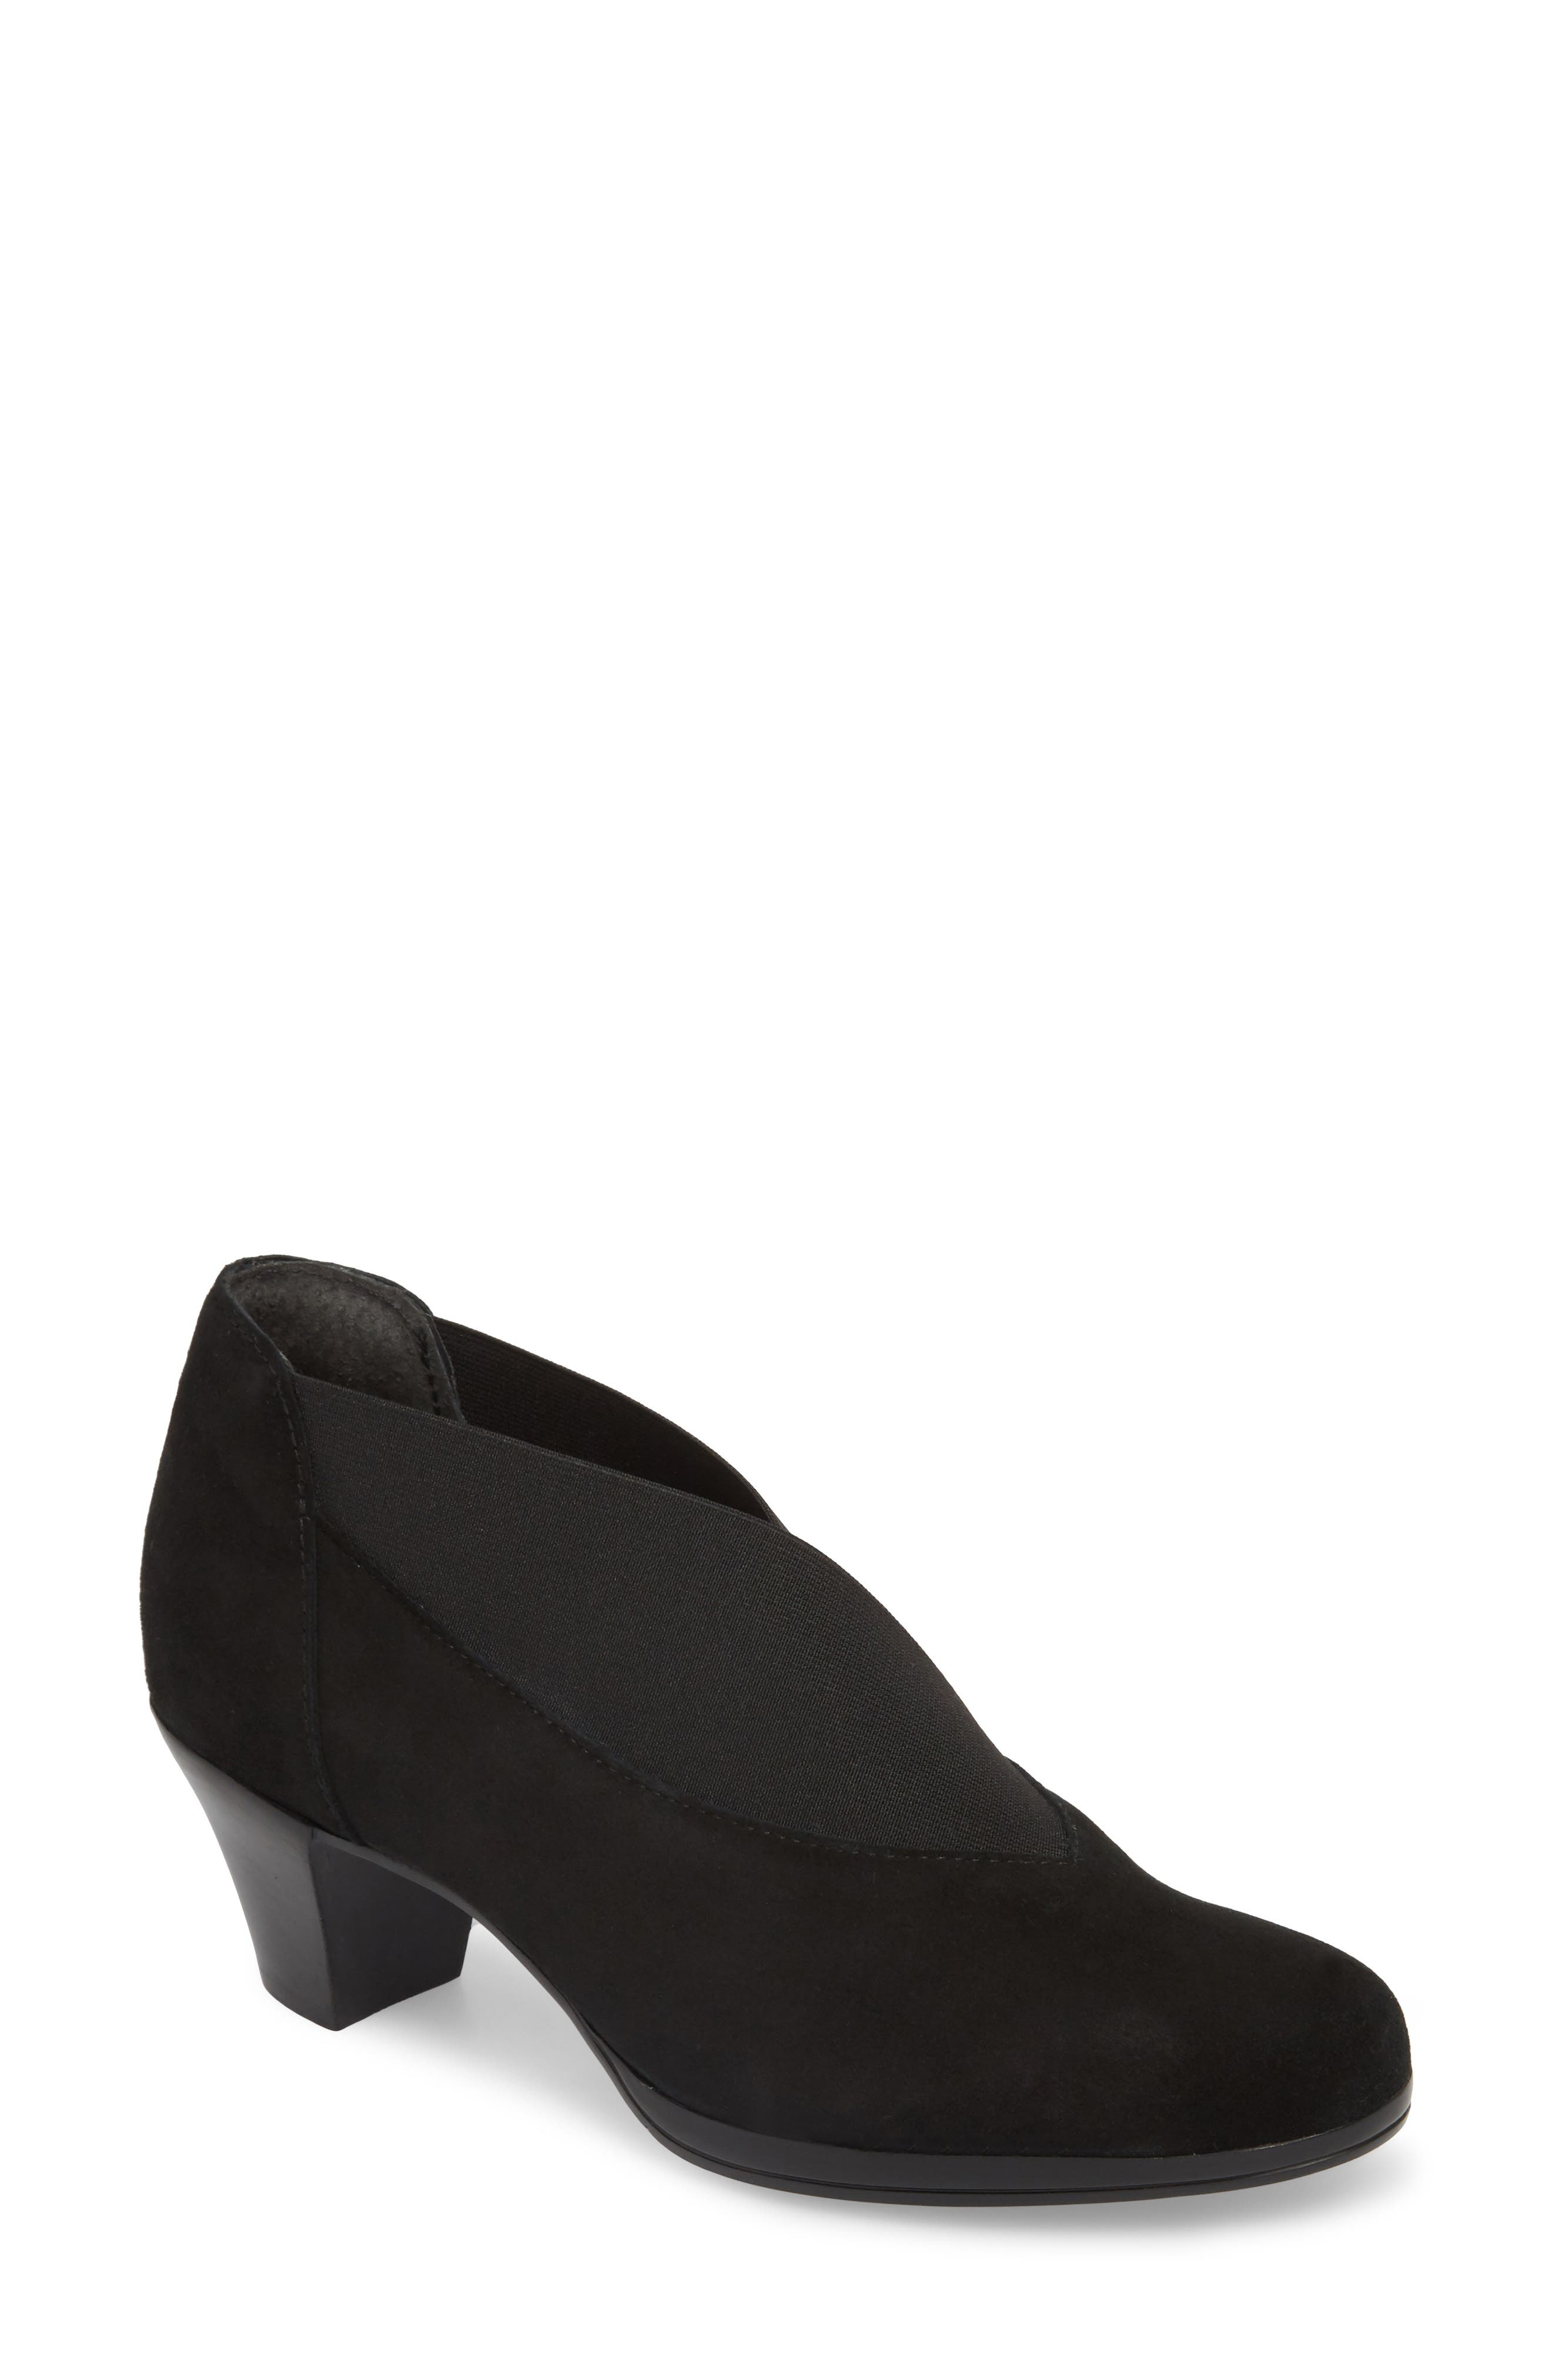 MUNRO, Francee Boot, Main thumbnail 1, color, BLACK SUEDE